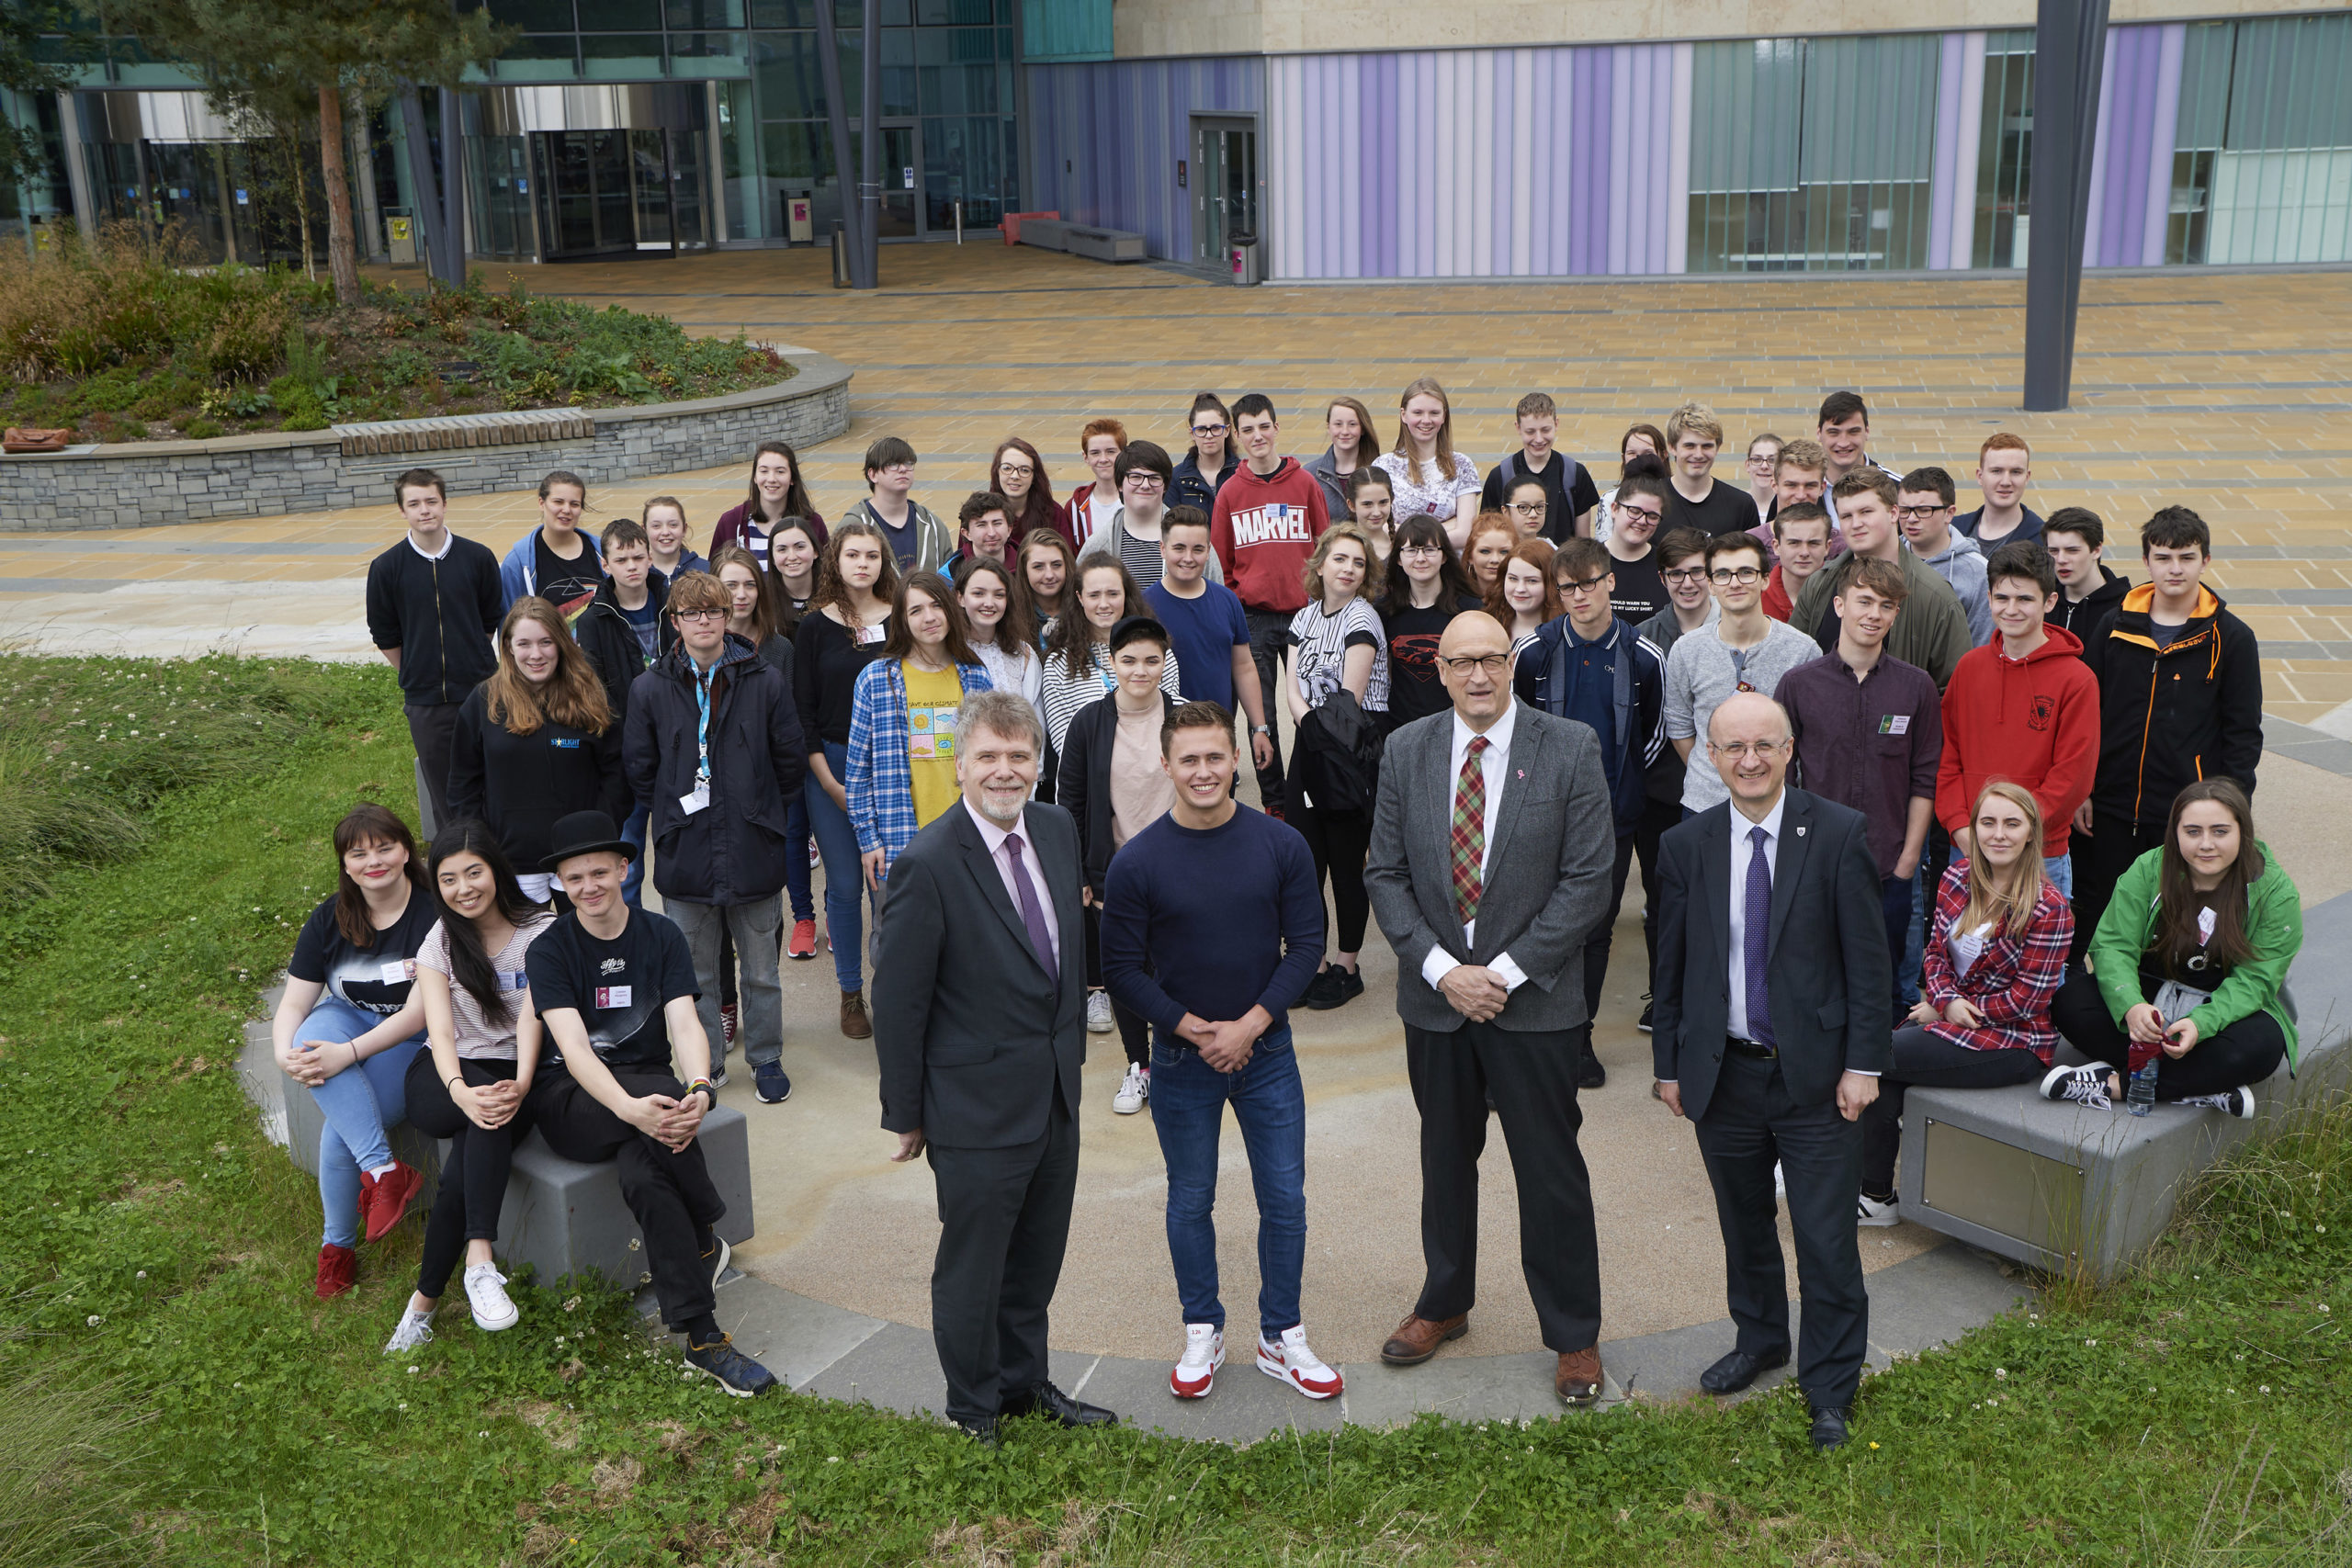 Some members of the Scottish Youth Parliament play an active role in councils.